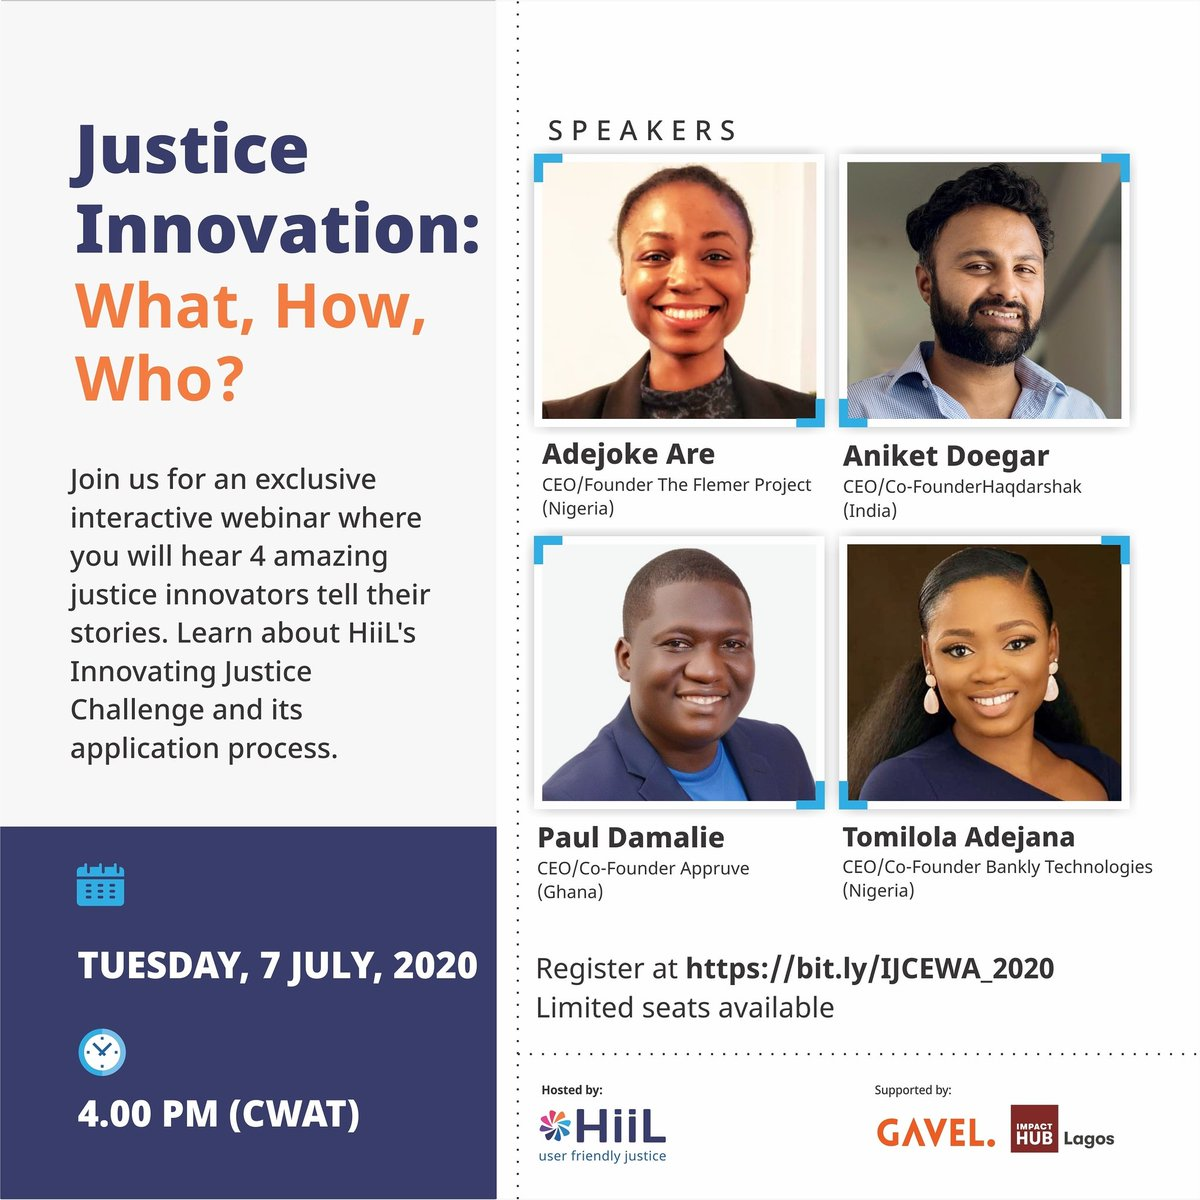 Got questions about the Innovating Justice Challenge and its application process? Join us for an exclusive interactive webinar on Tuesday, 7 July by 4pm where all your questions would be answered.  Register here: https://t.co/fct4ML7PCC  #justinnovate20 #accesstojustice #lawtech https://t.co/tLrbHxj1Xe